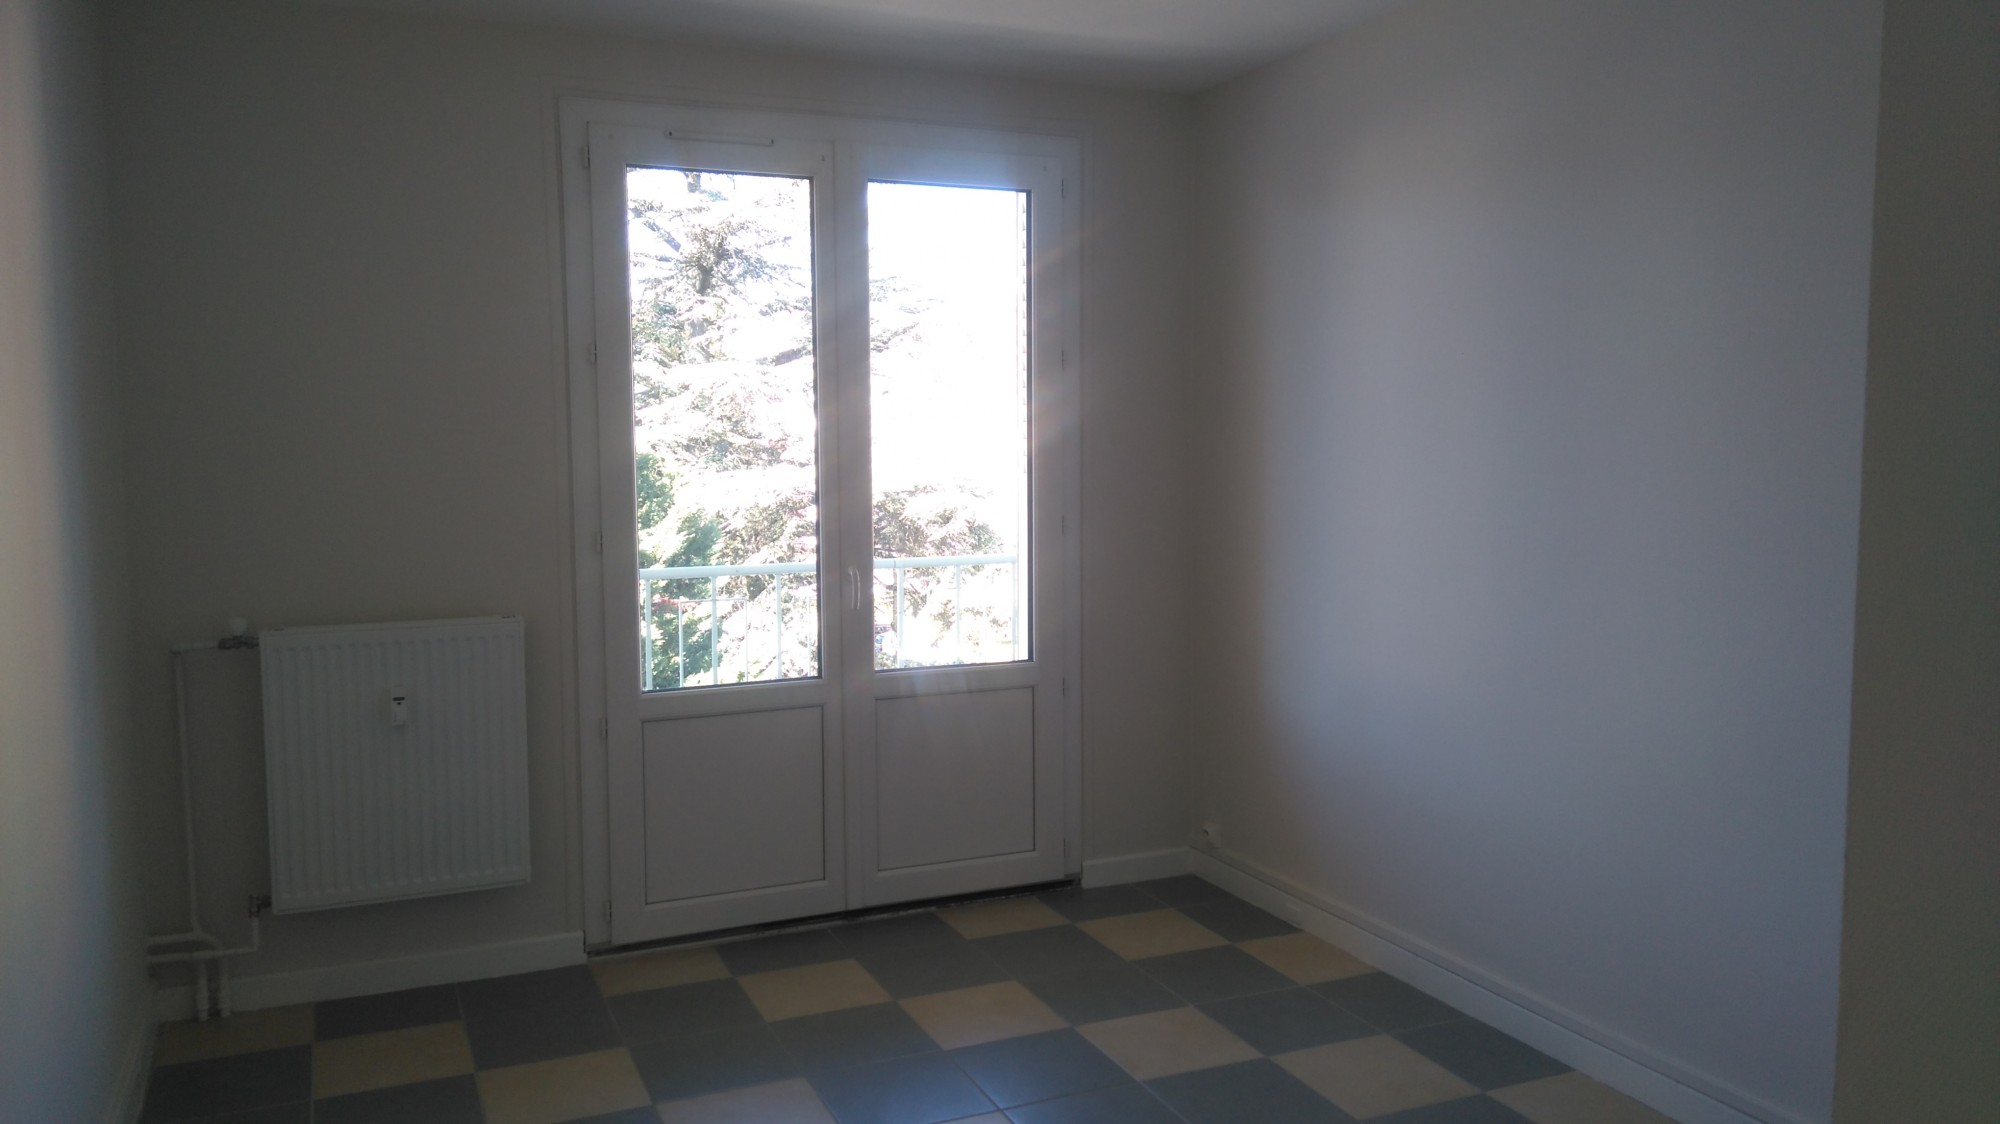 Valence location appartement grand charran avec balcon location agence immobili re valence - Location appartement meuble valence ...